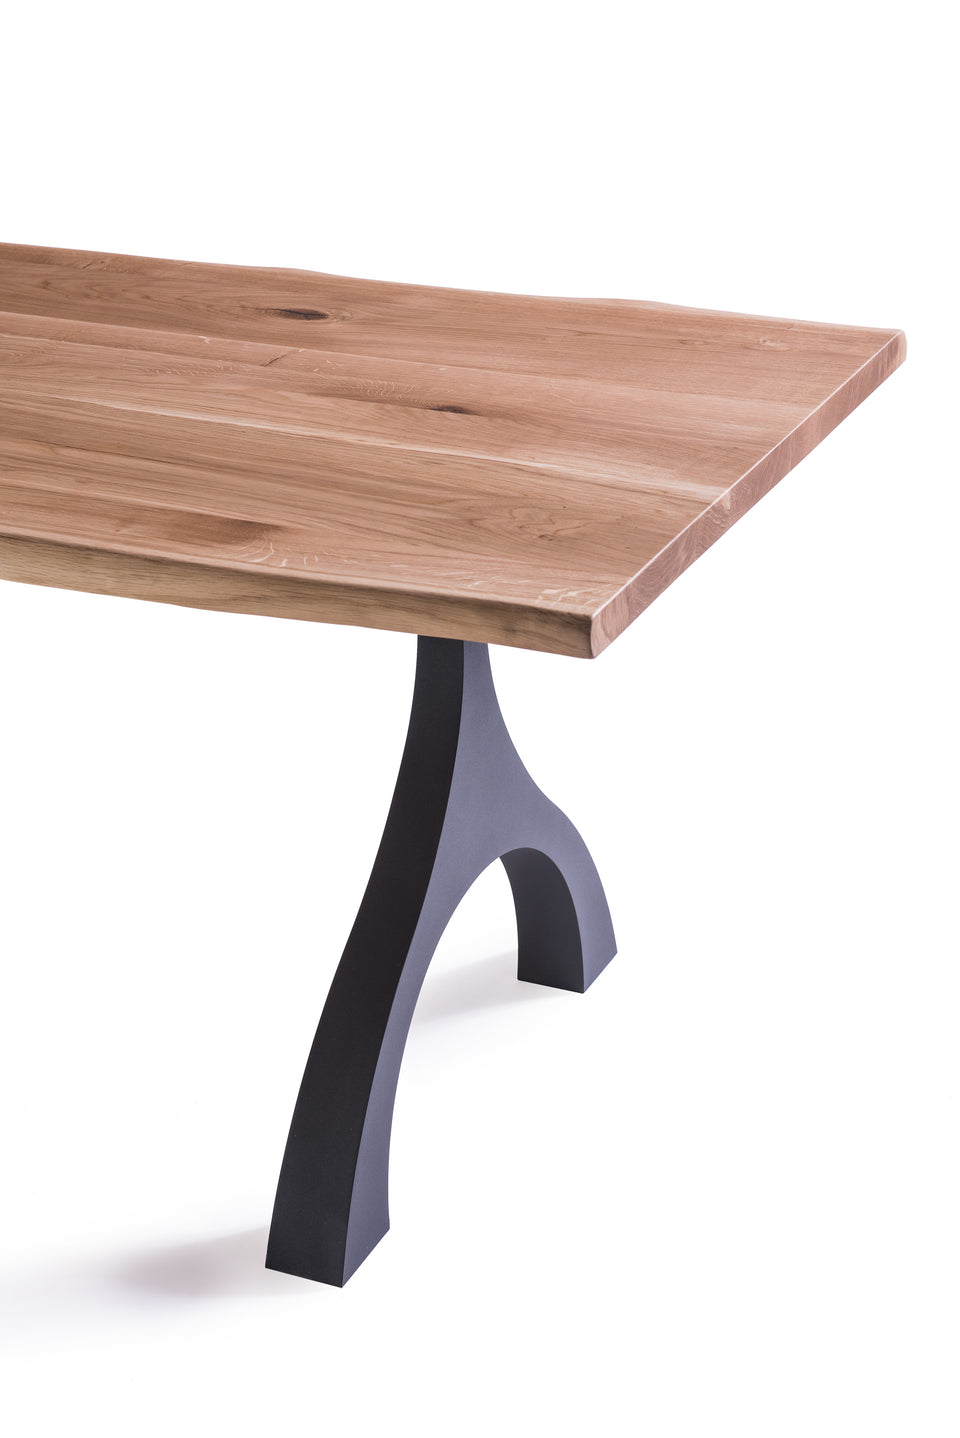 Groyer - HUE180 solid wood dining table